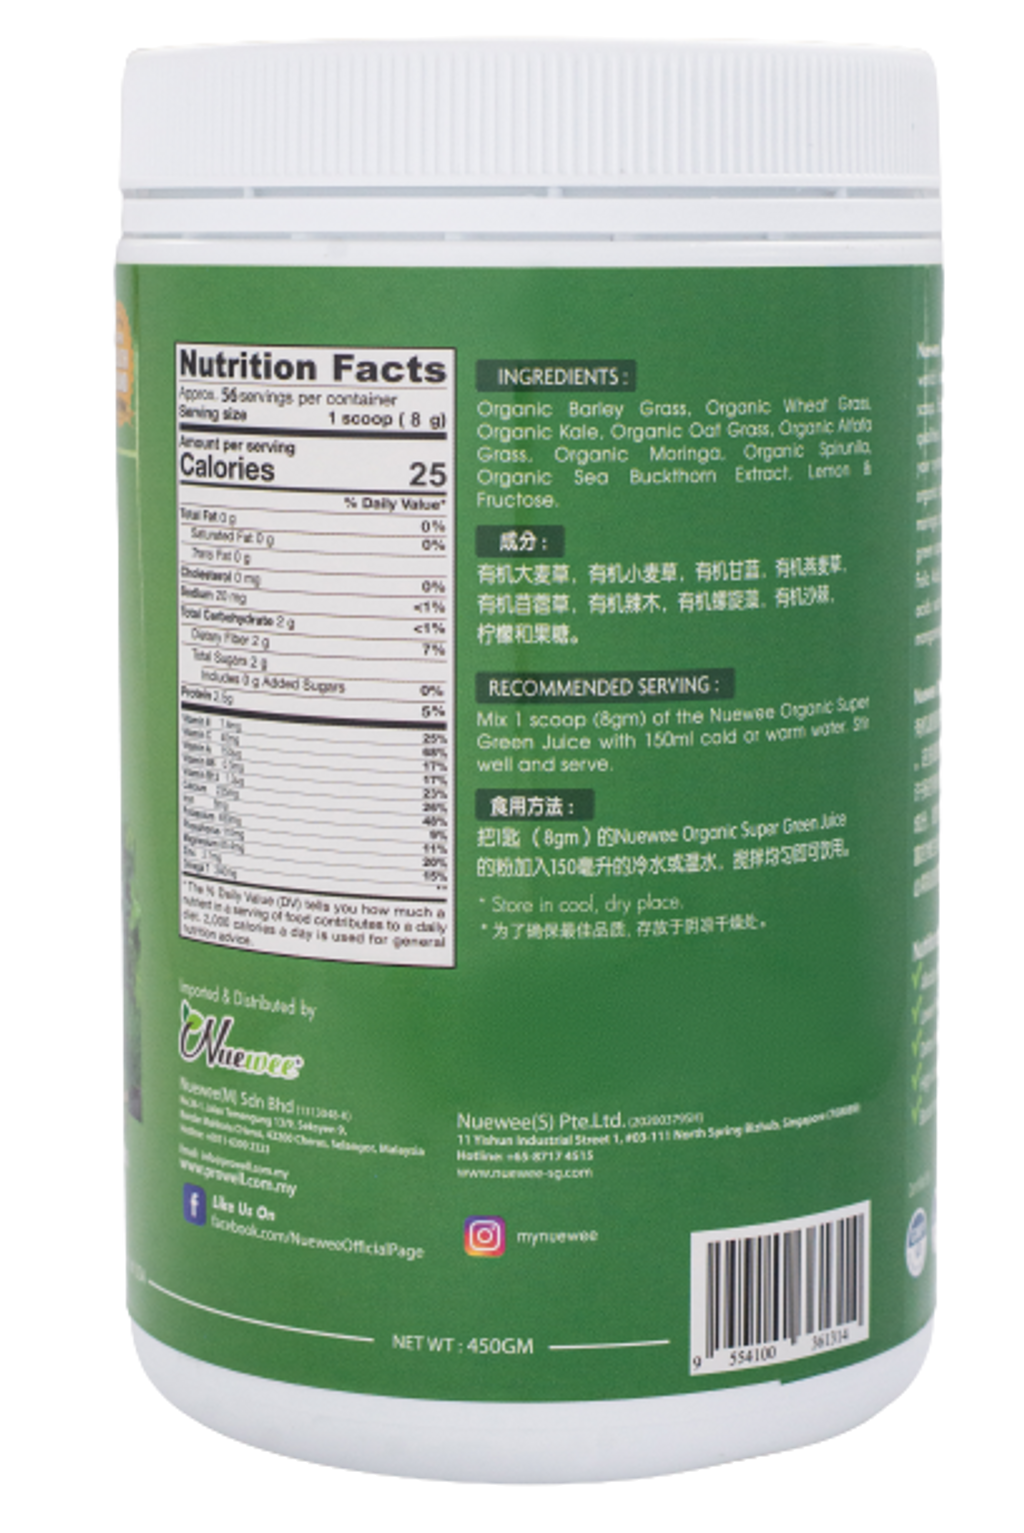 Nuewee-Organic-Super-Green-Juice-450GM-Back-removebg-preview.png